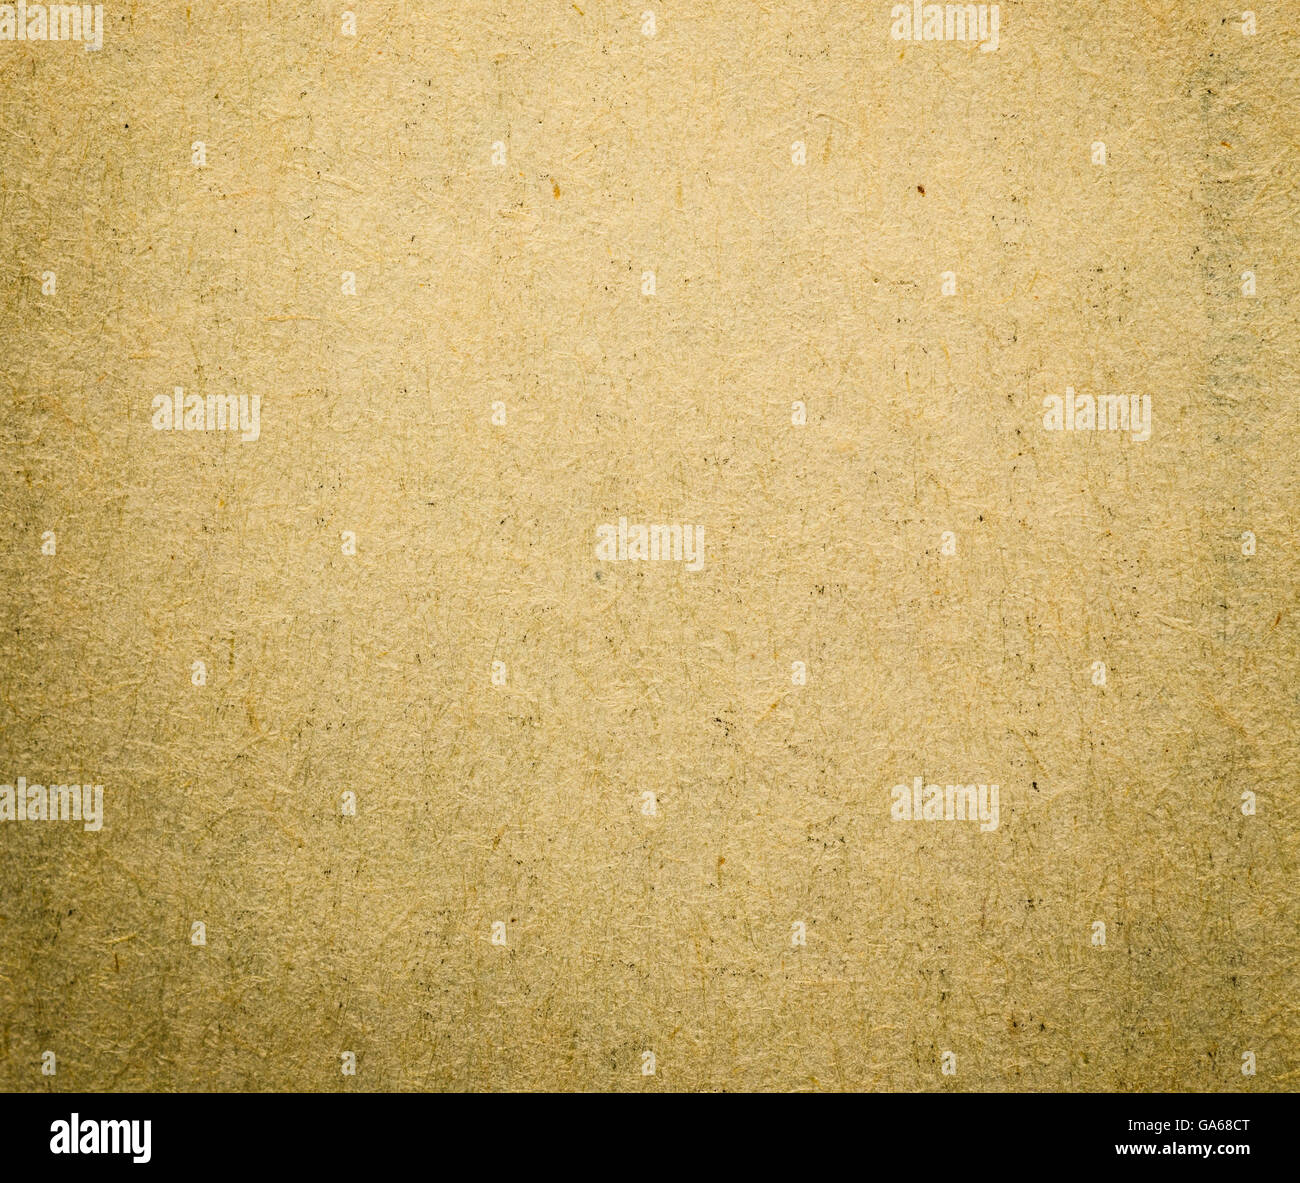 Old vintage paper background with mould - Stock Image